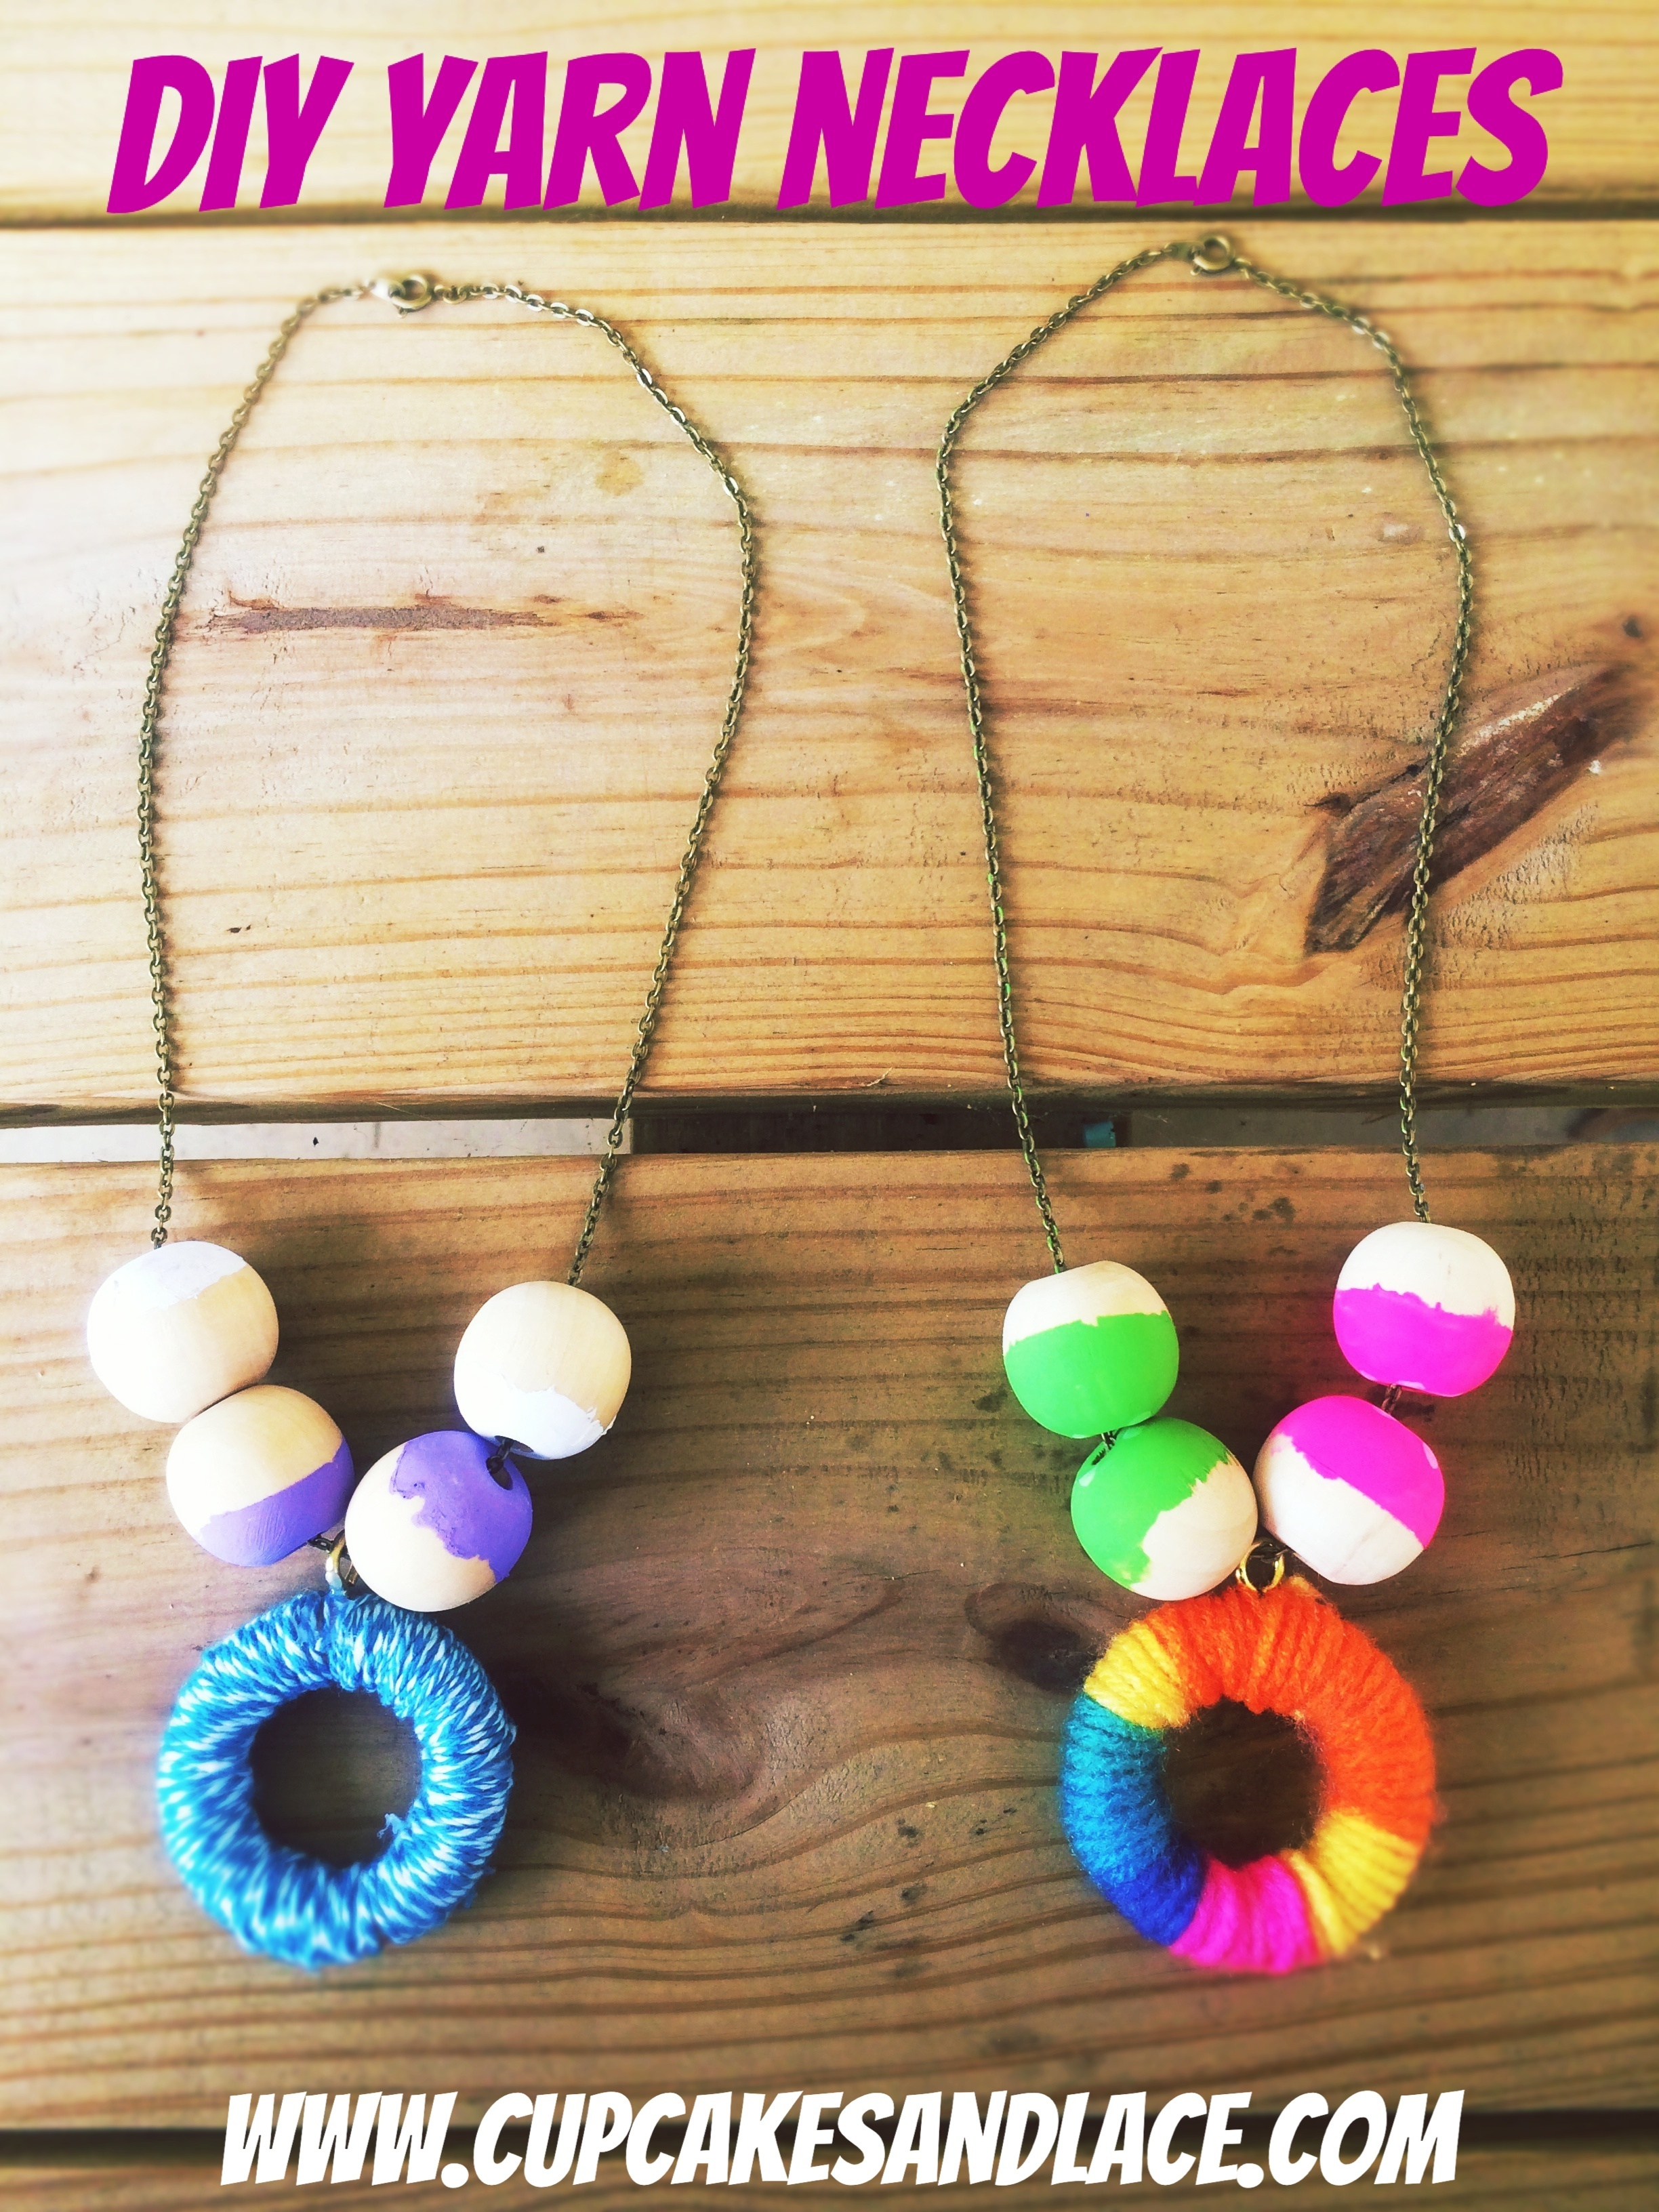 Cupcakes and lace diy girls rainbow neon jewelry girl scout we have an cupcakesandlace awesome diy solutioingenieria Choice Image